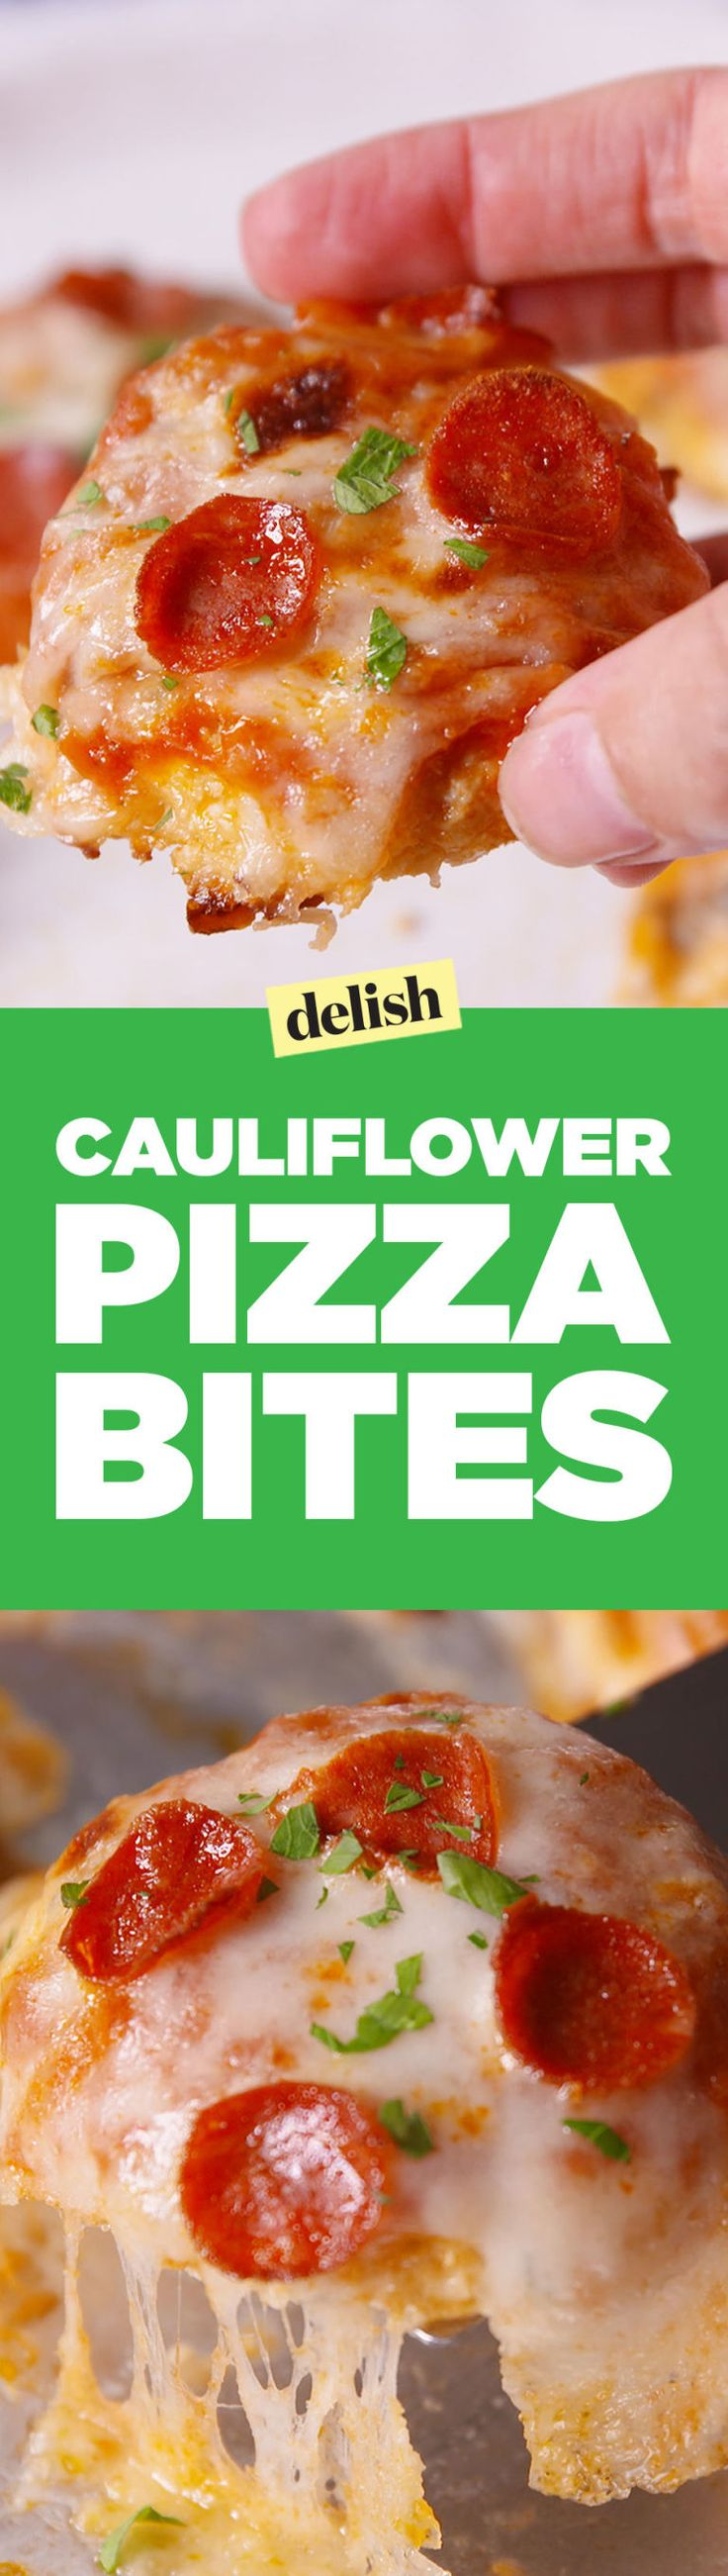 Cauliflower Pizza Bites Will Make You Actually Want To Eat Your Veggies